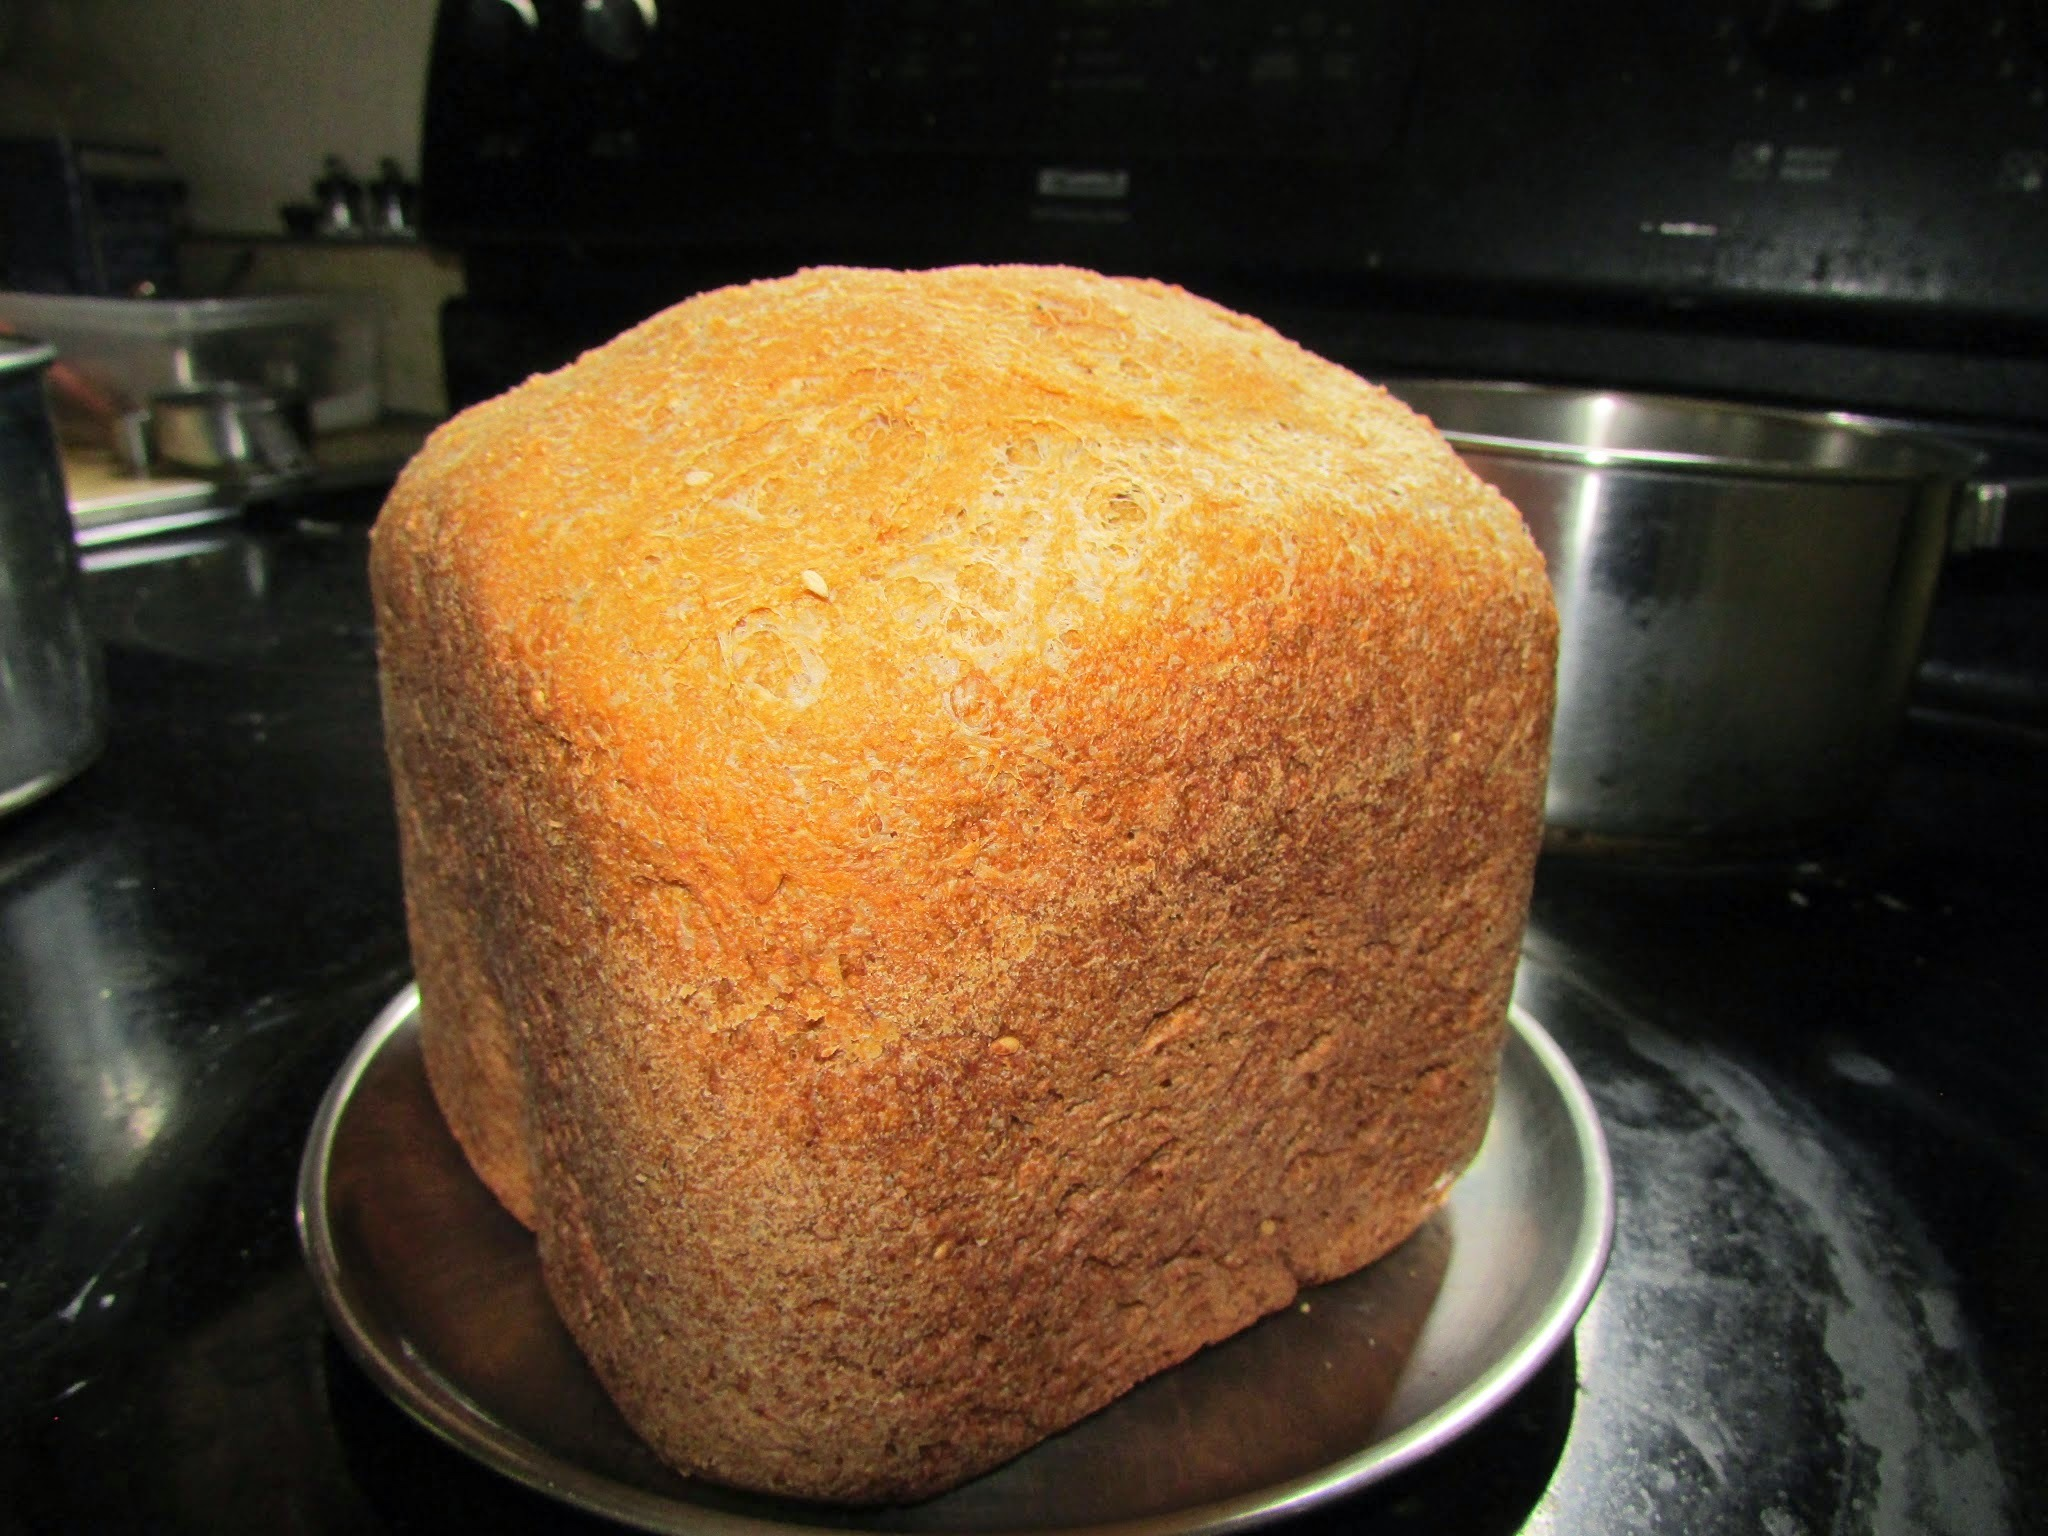 Baking bread at home